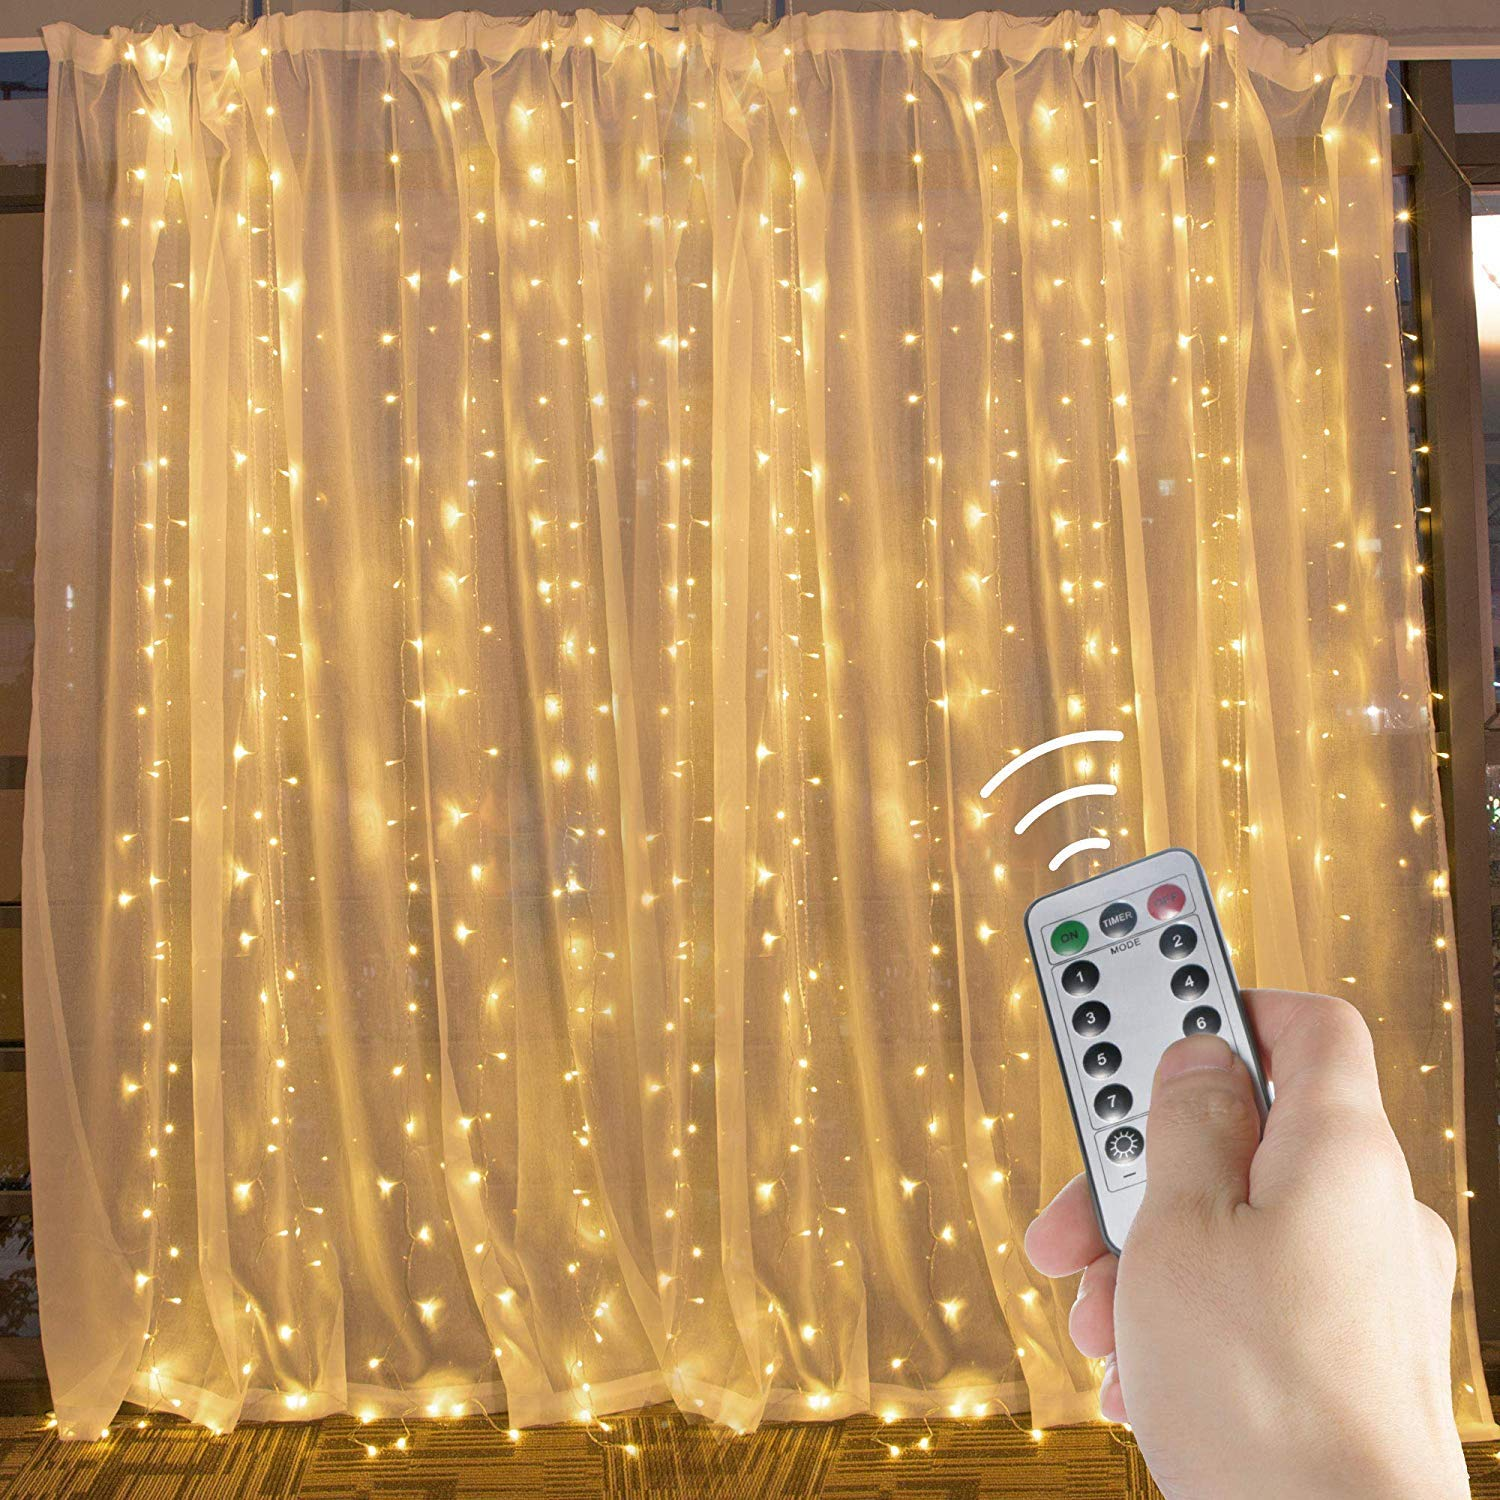 premium selection 206c7 33a69 10 Ft Window Curtain Icicle String Lights with Remote & Timer, 300 LED  Fairy Twinkle Lights with 8 Modes Fits for Bedroom Wedding Party Wall ...